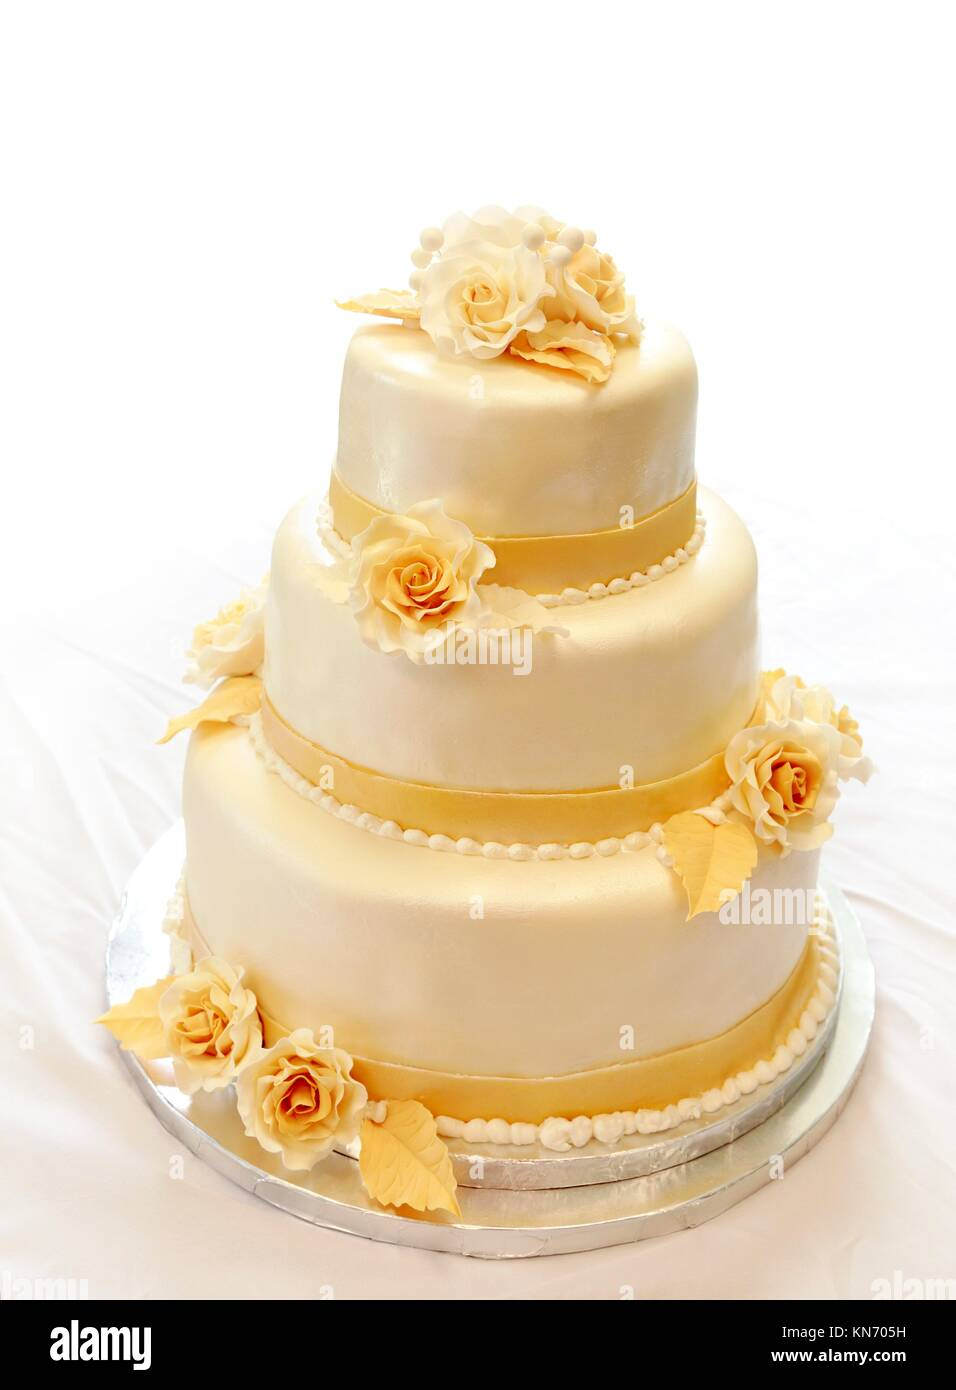 3 Tier White Wedding Cake Stock Photos & 3 Tier White Wedding Cake ...